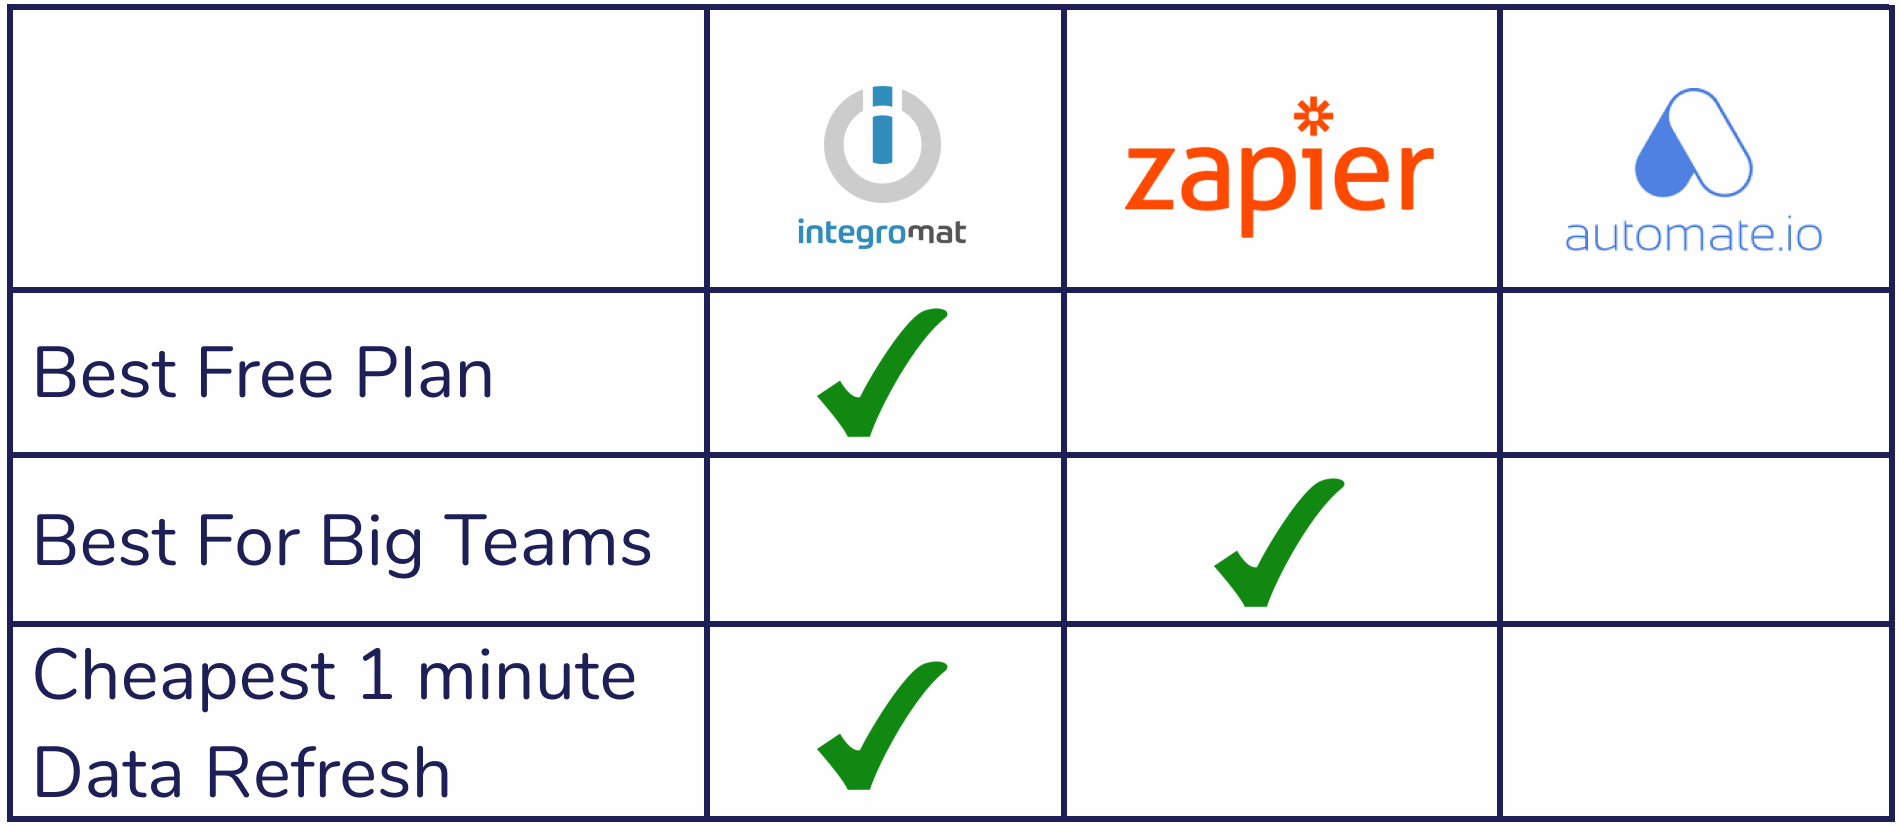 Pricing of Zapier, Integromat and Automate.io